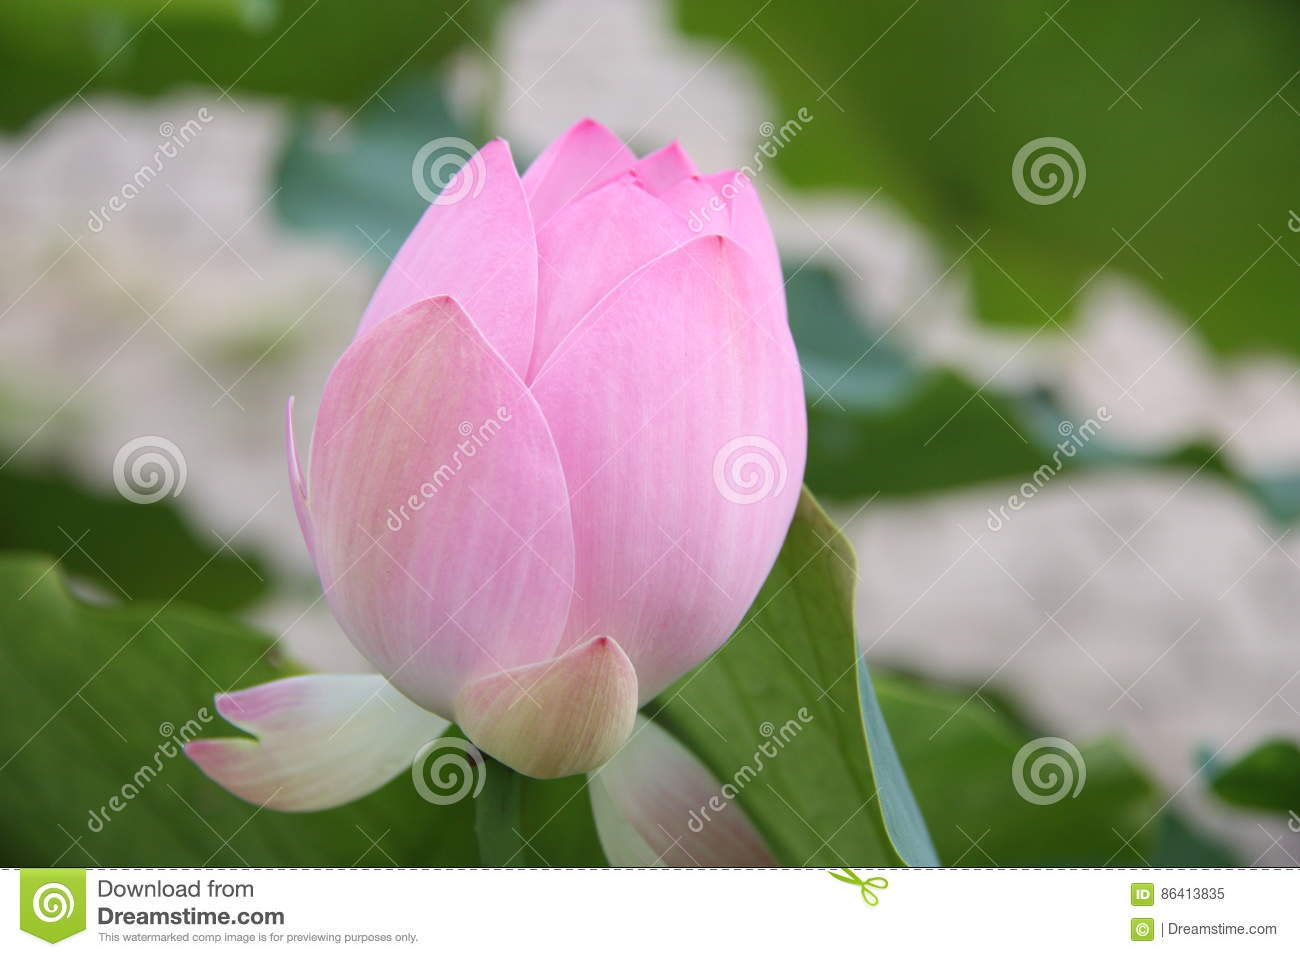 Lotus flower pink lily water nature lotus root stock image lotus flower pink lily water nature lotus root mightylinksfo